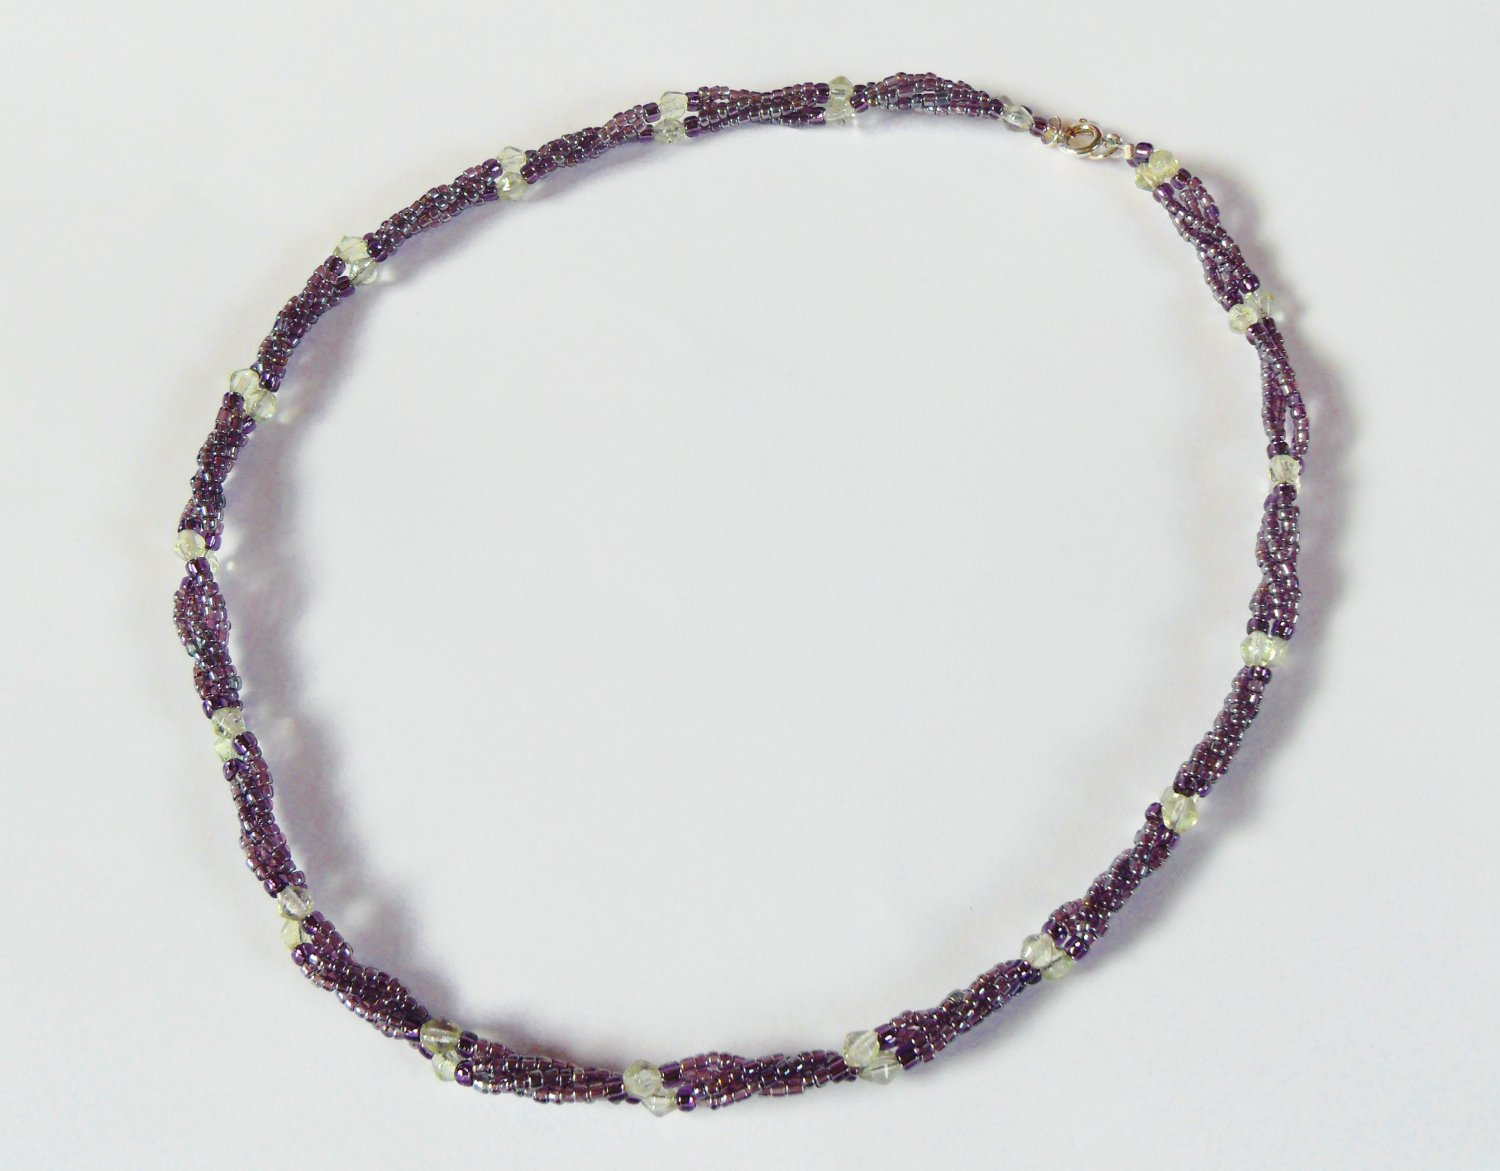 Light purple and light green twisted necklace